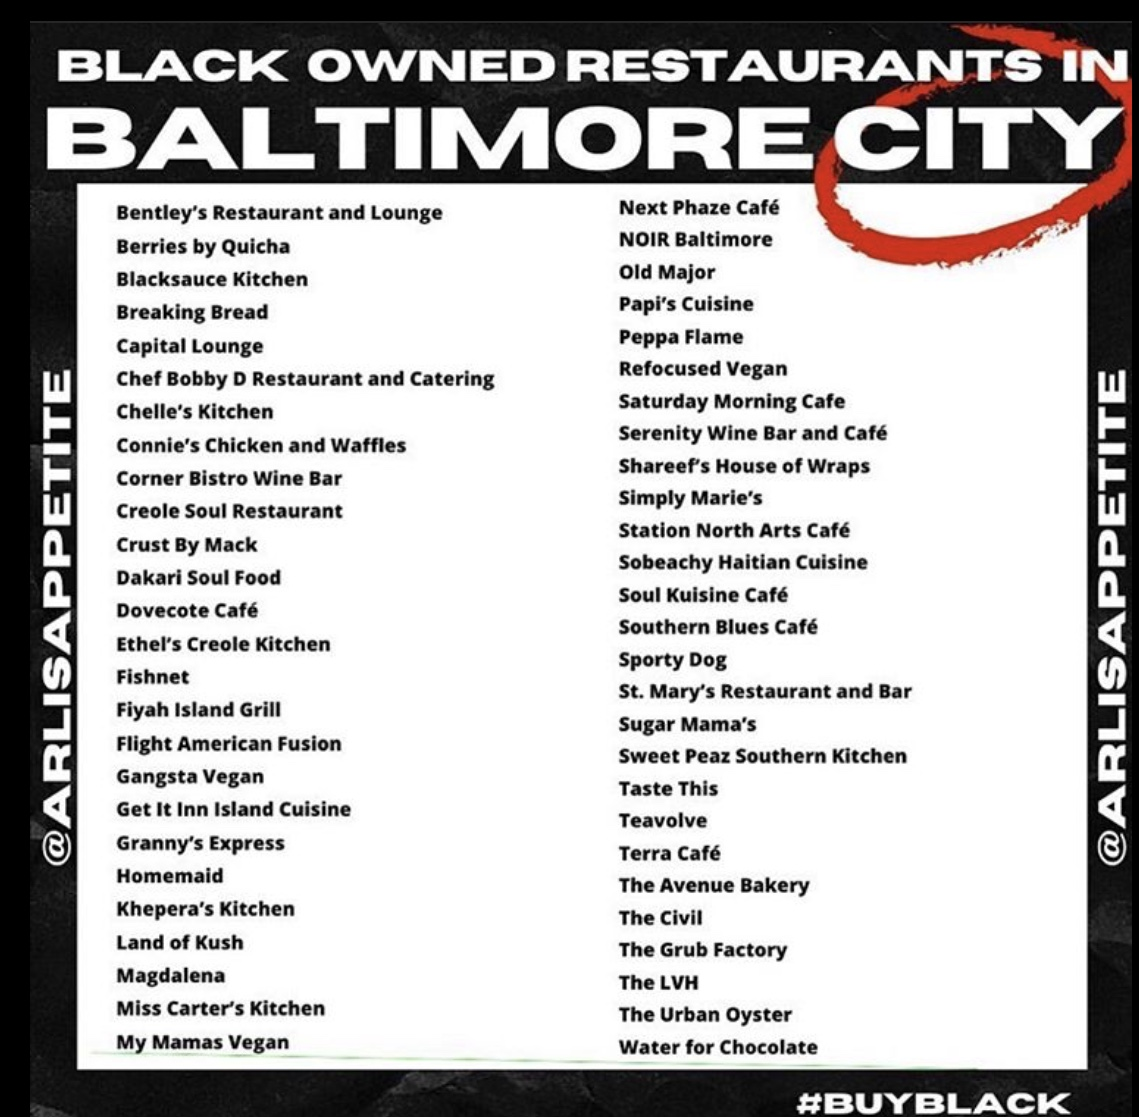 Replying to @KindraLevonne: Black Owned Restaurants in Baltimore City 🖤